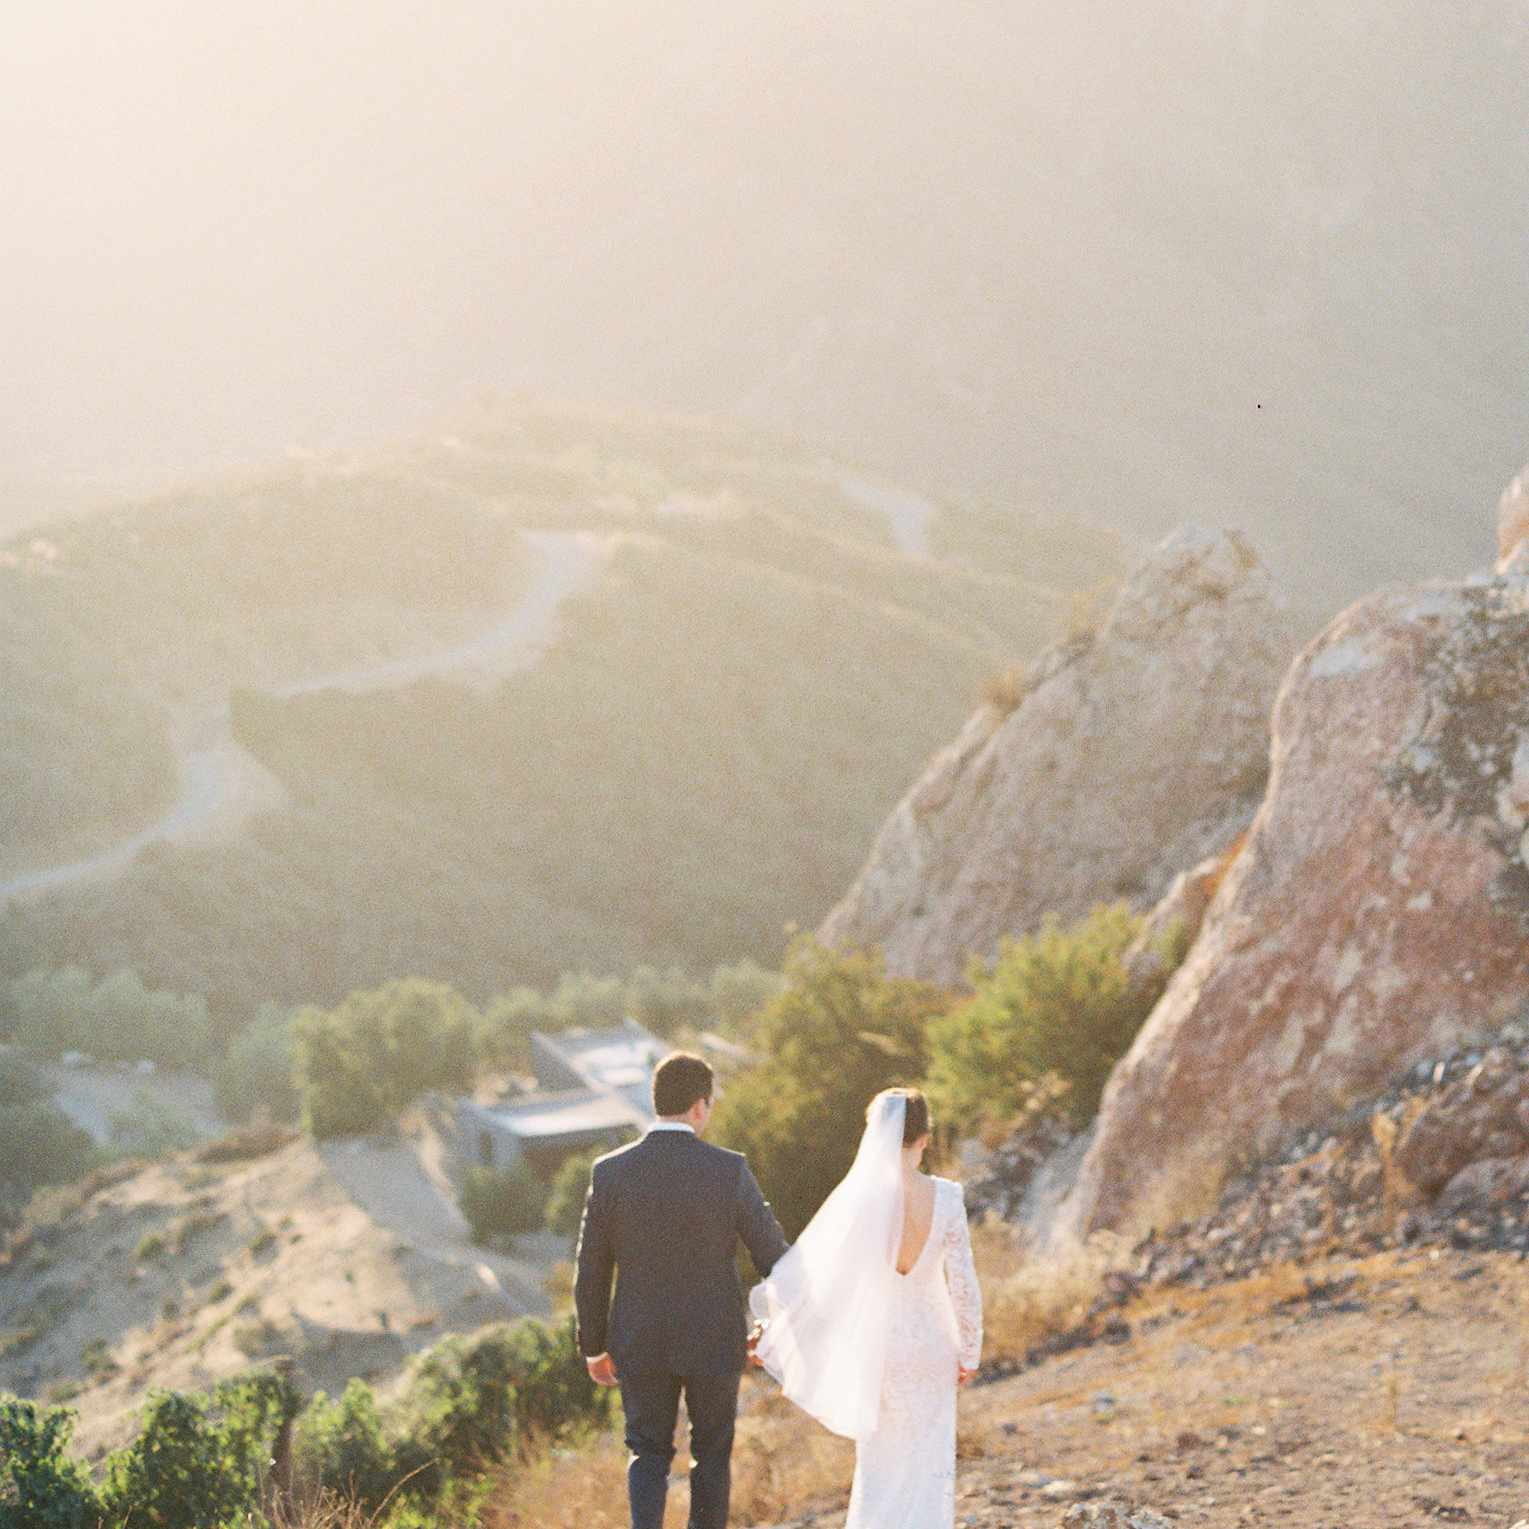 Bride and groom on mountain